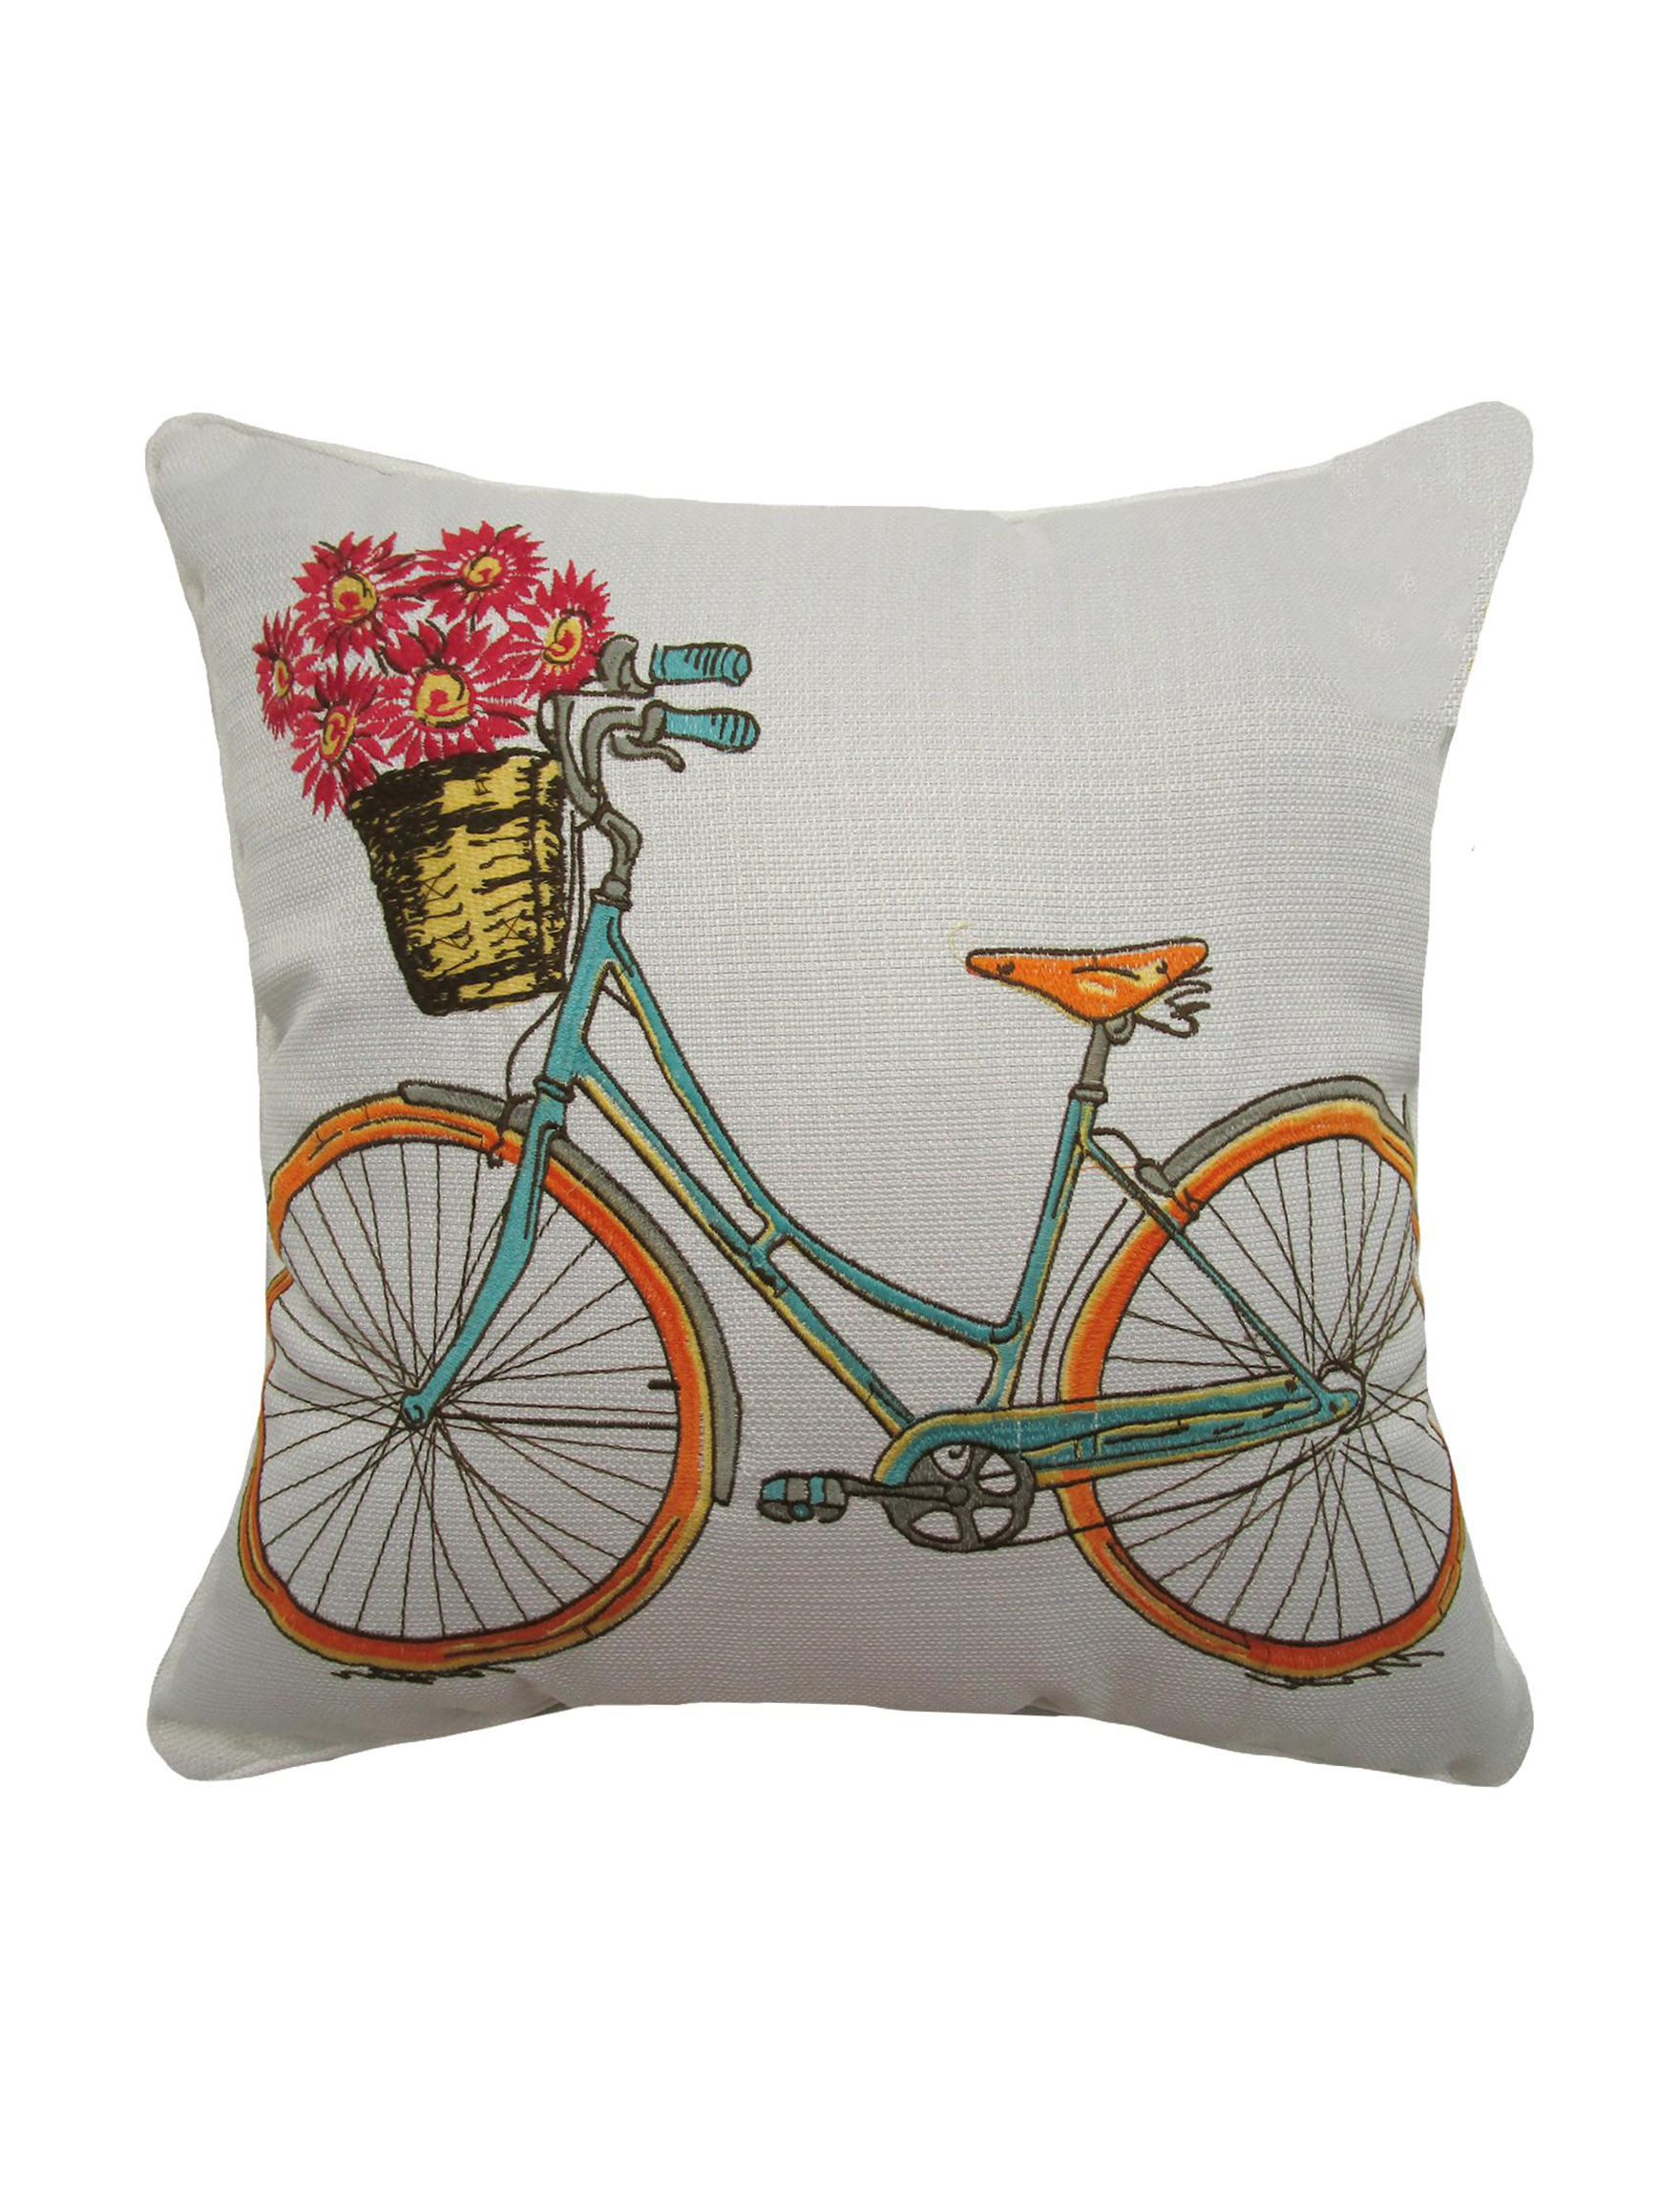 Home Fashions International  Decorative Pillows Outdoor Decor